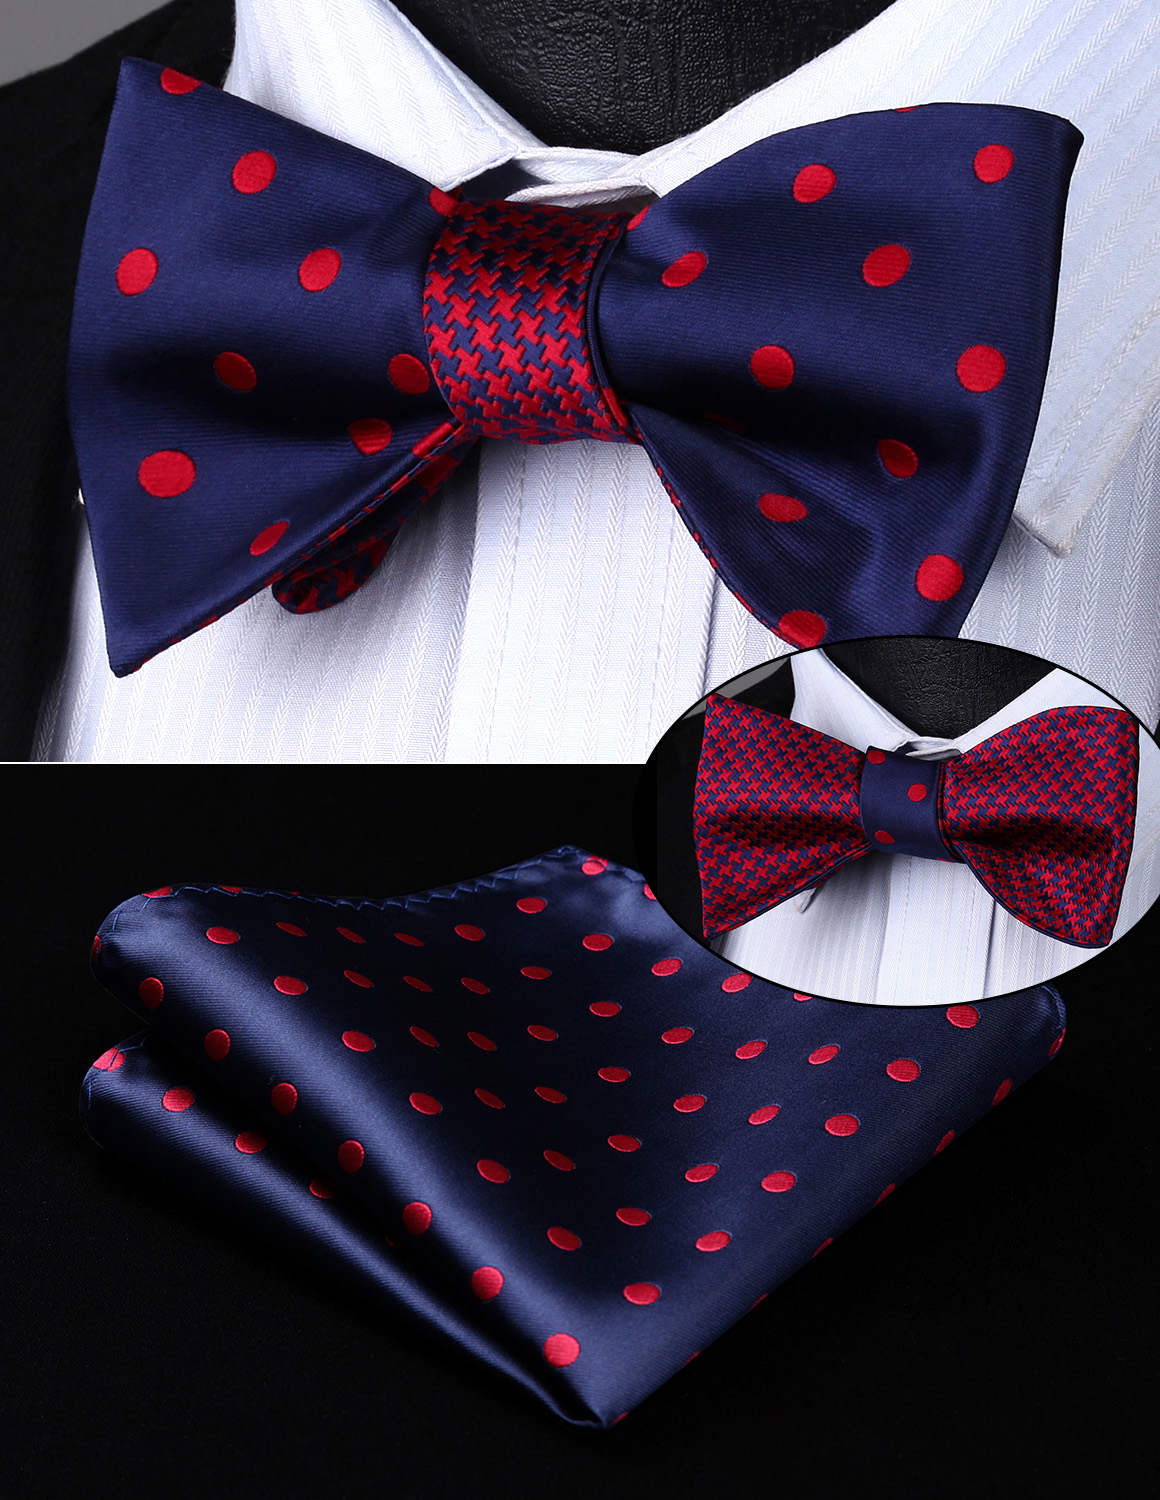 BE04RS Blue Red Dot Geometric Double Side Bowtie Men Silk Self Bow Tie Hanky Set Pocket Square Classic Party Wedding